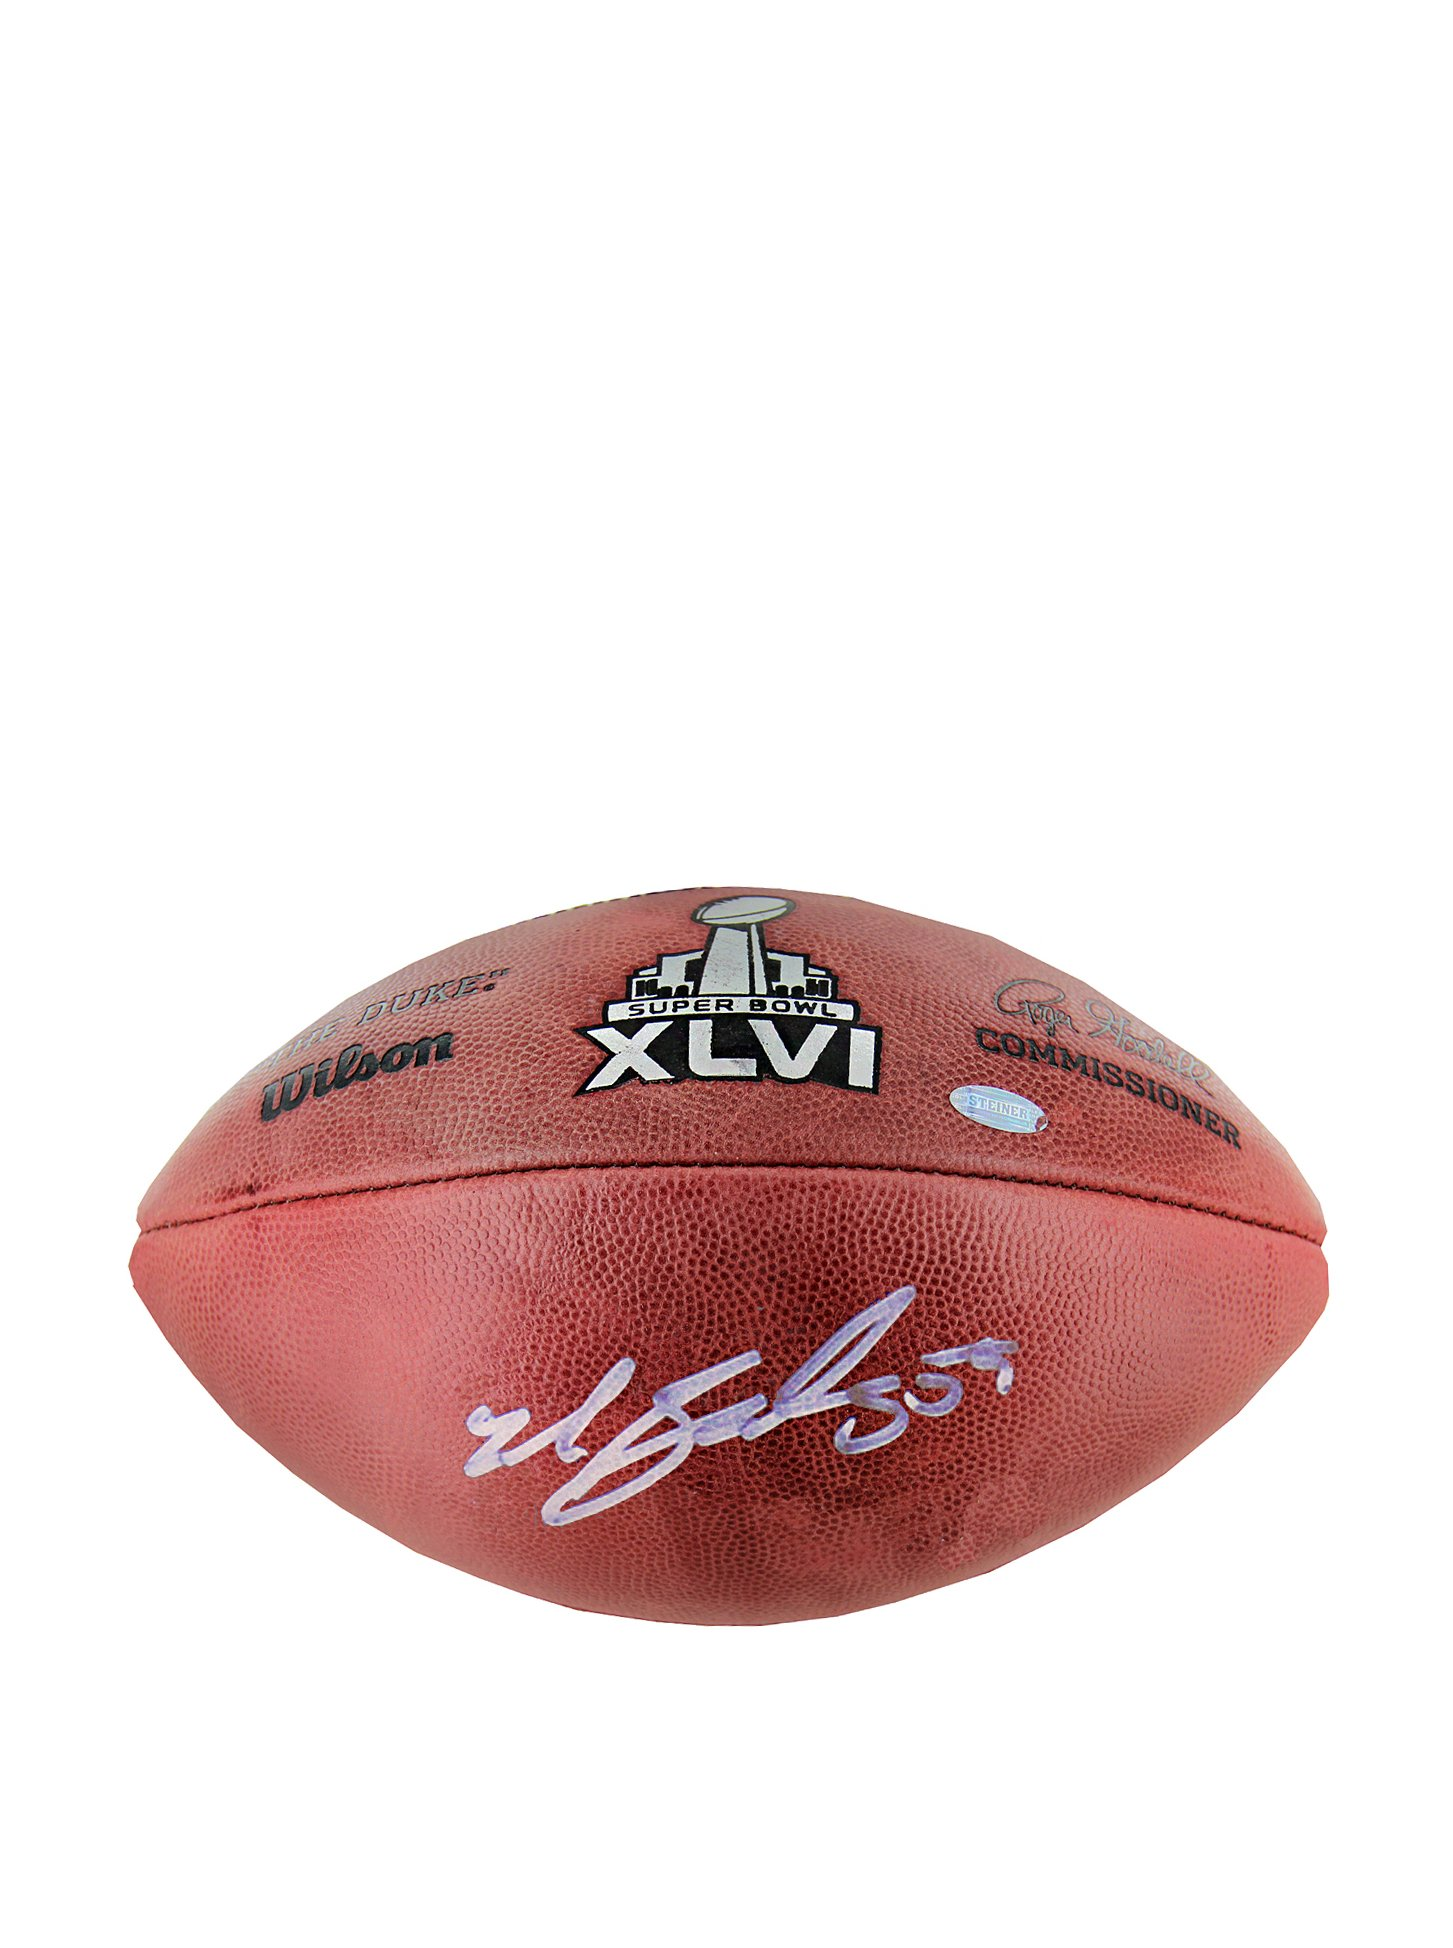 NFL New York Giants Michael Boley Signed Football